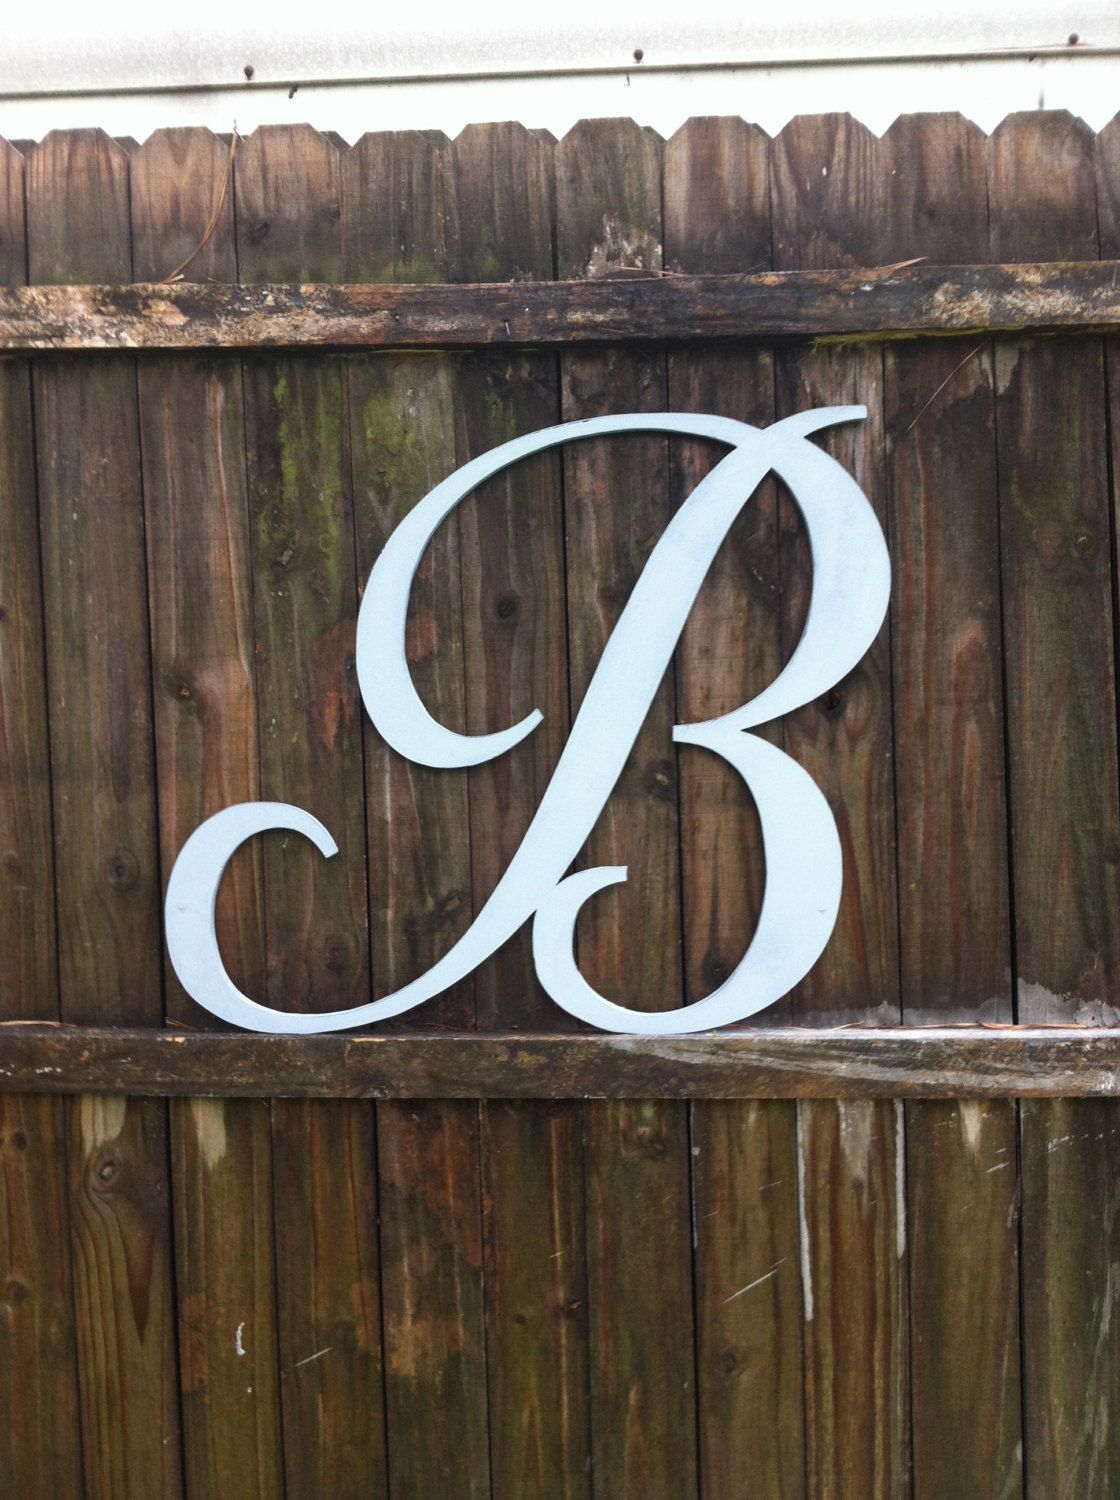 hand cut wood letter b any letter a z any font any color script vintage style cottage signs home decor wedding props by vintageshore on etsy